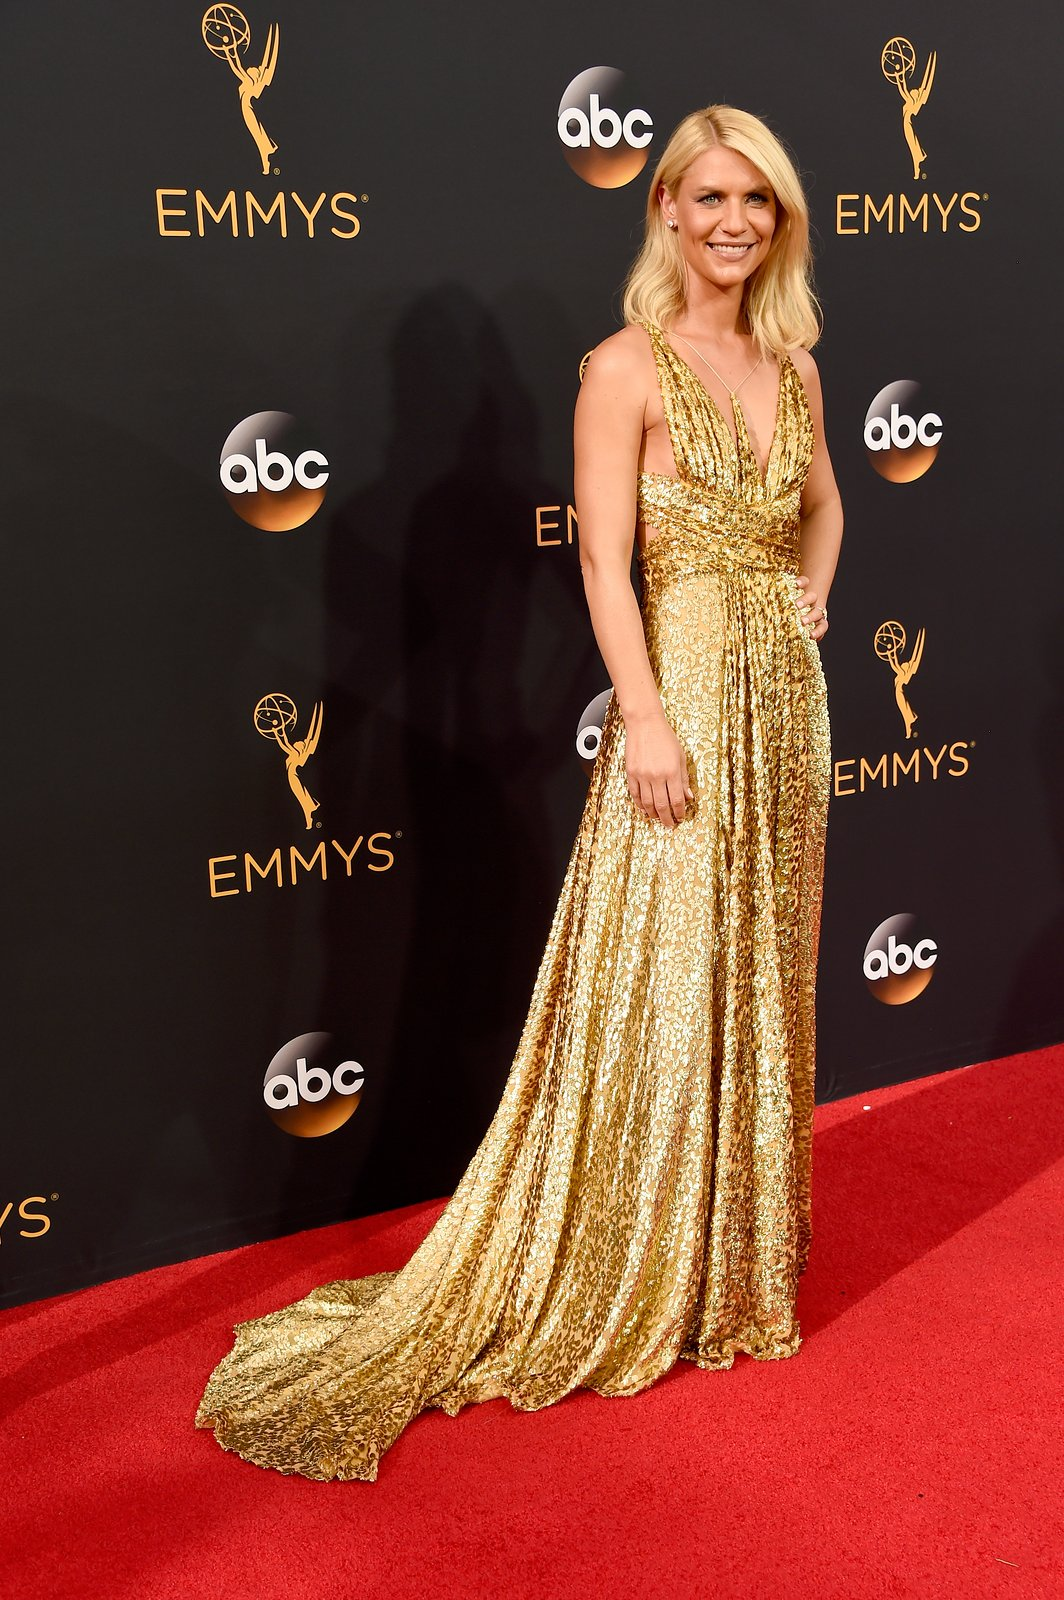 claire-danes-in-schiparelli-houte-couture-dress